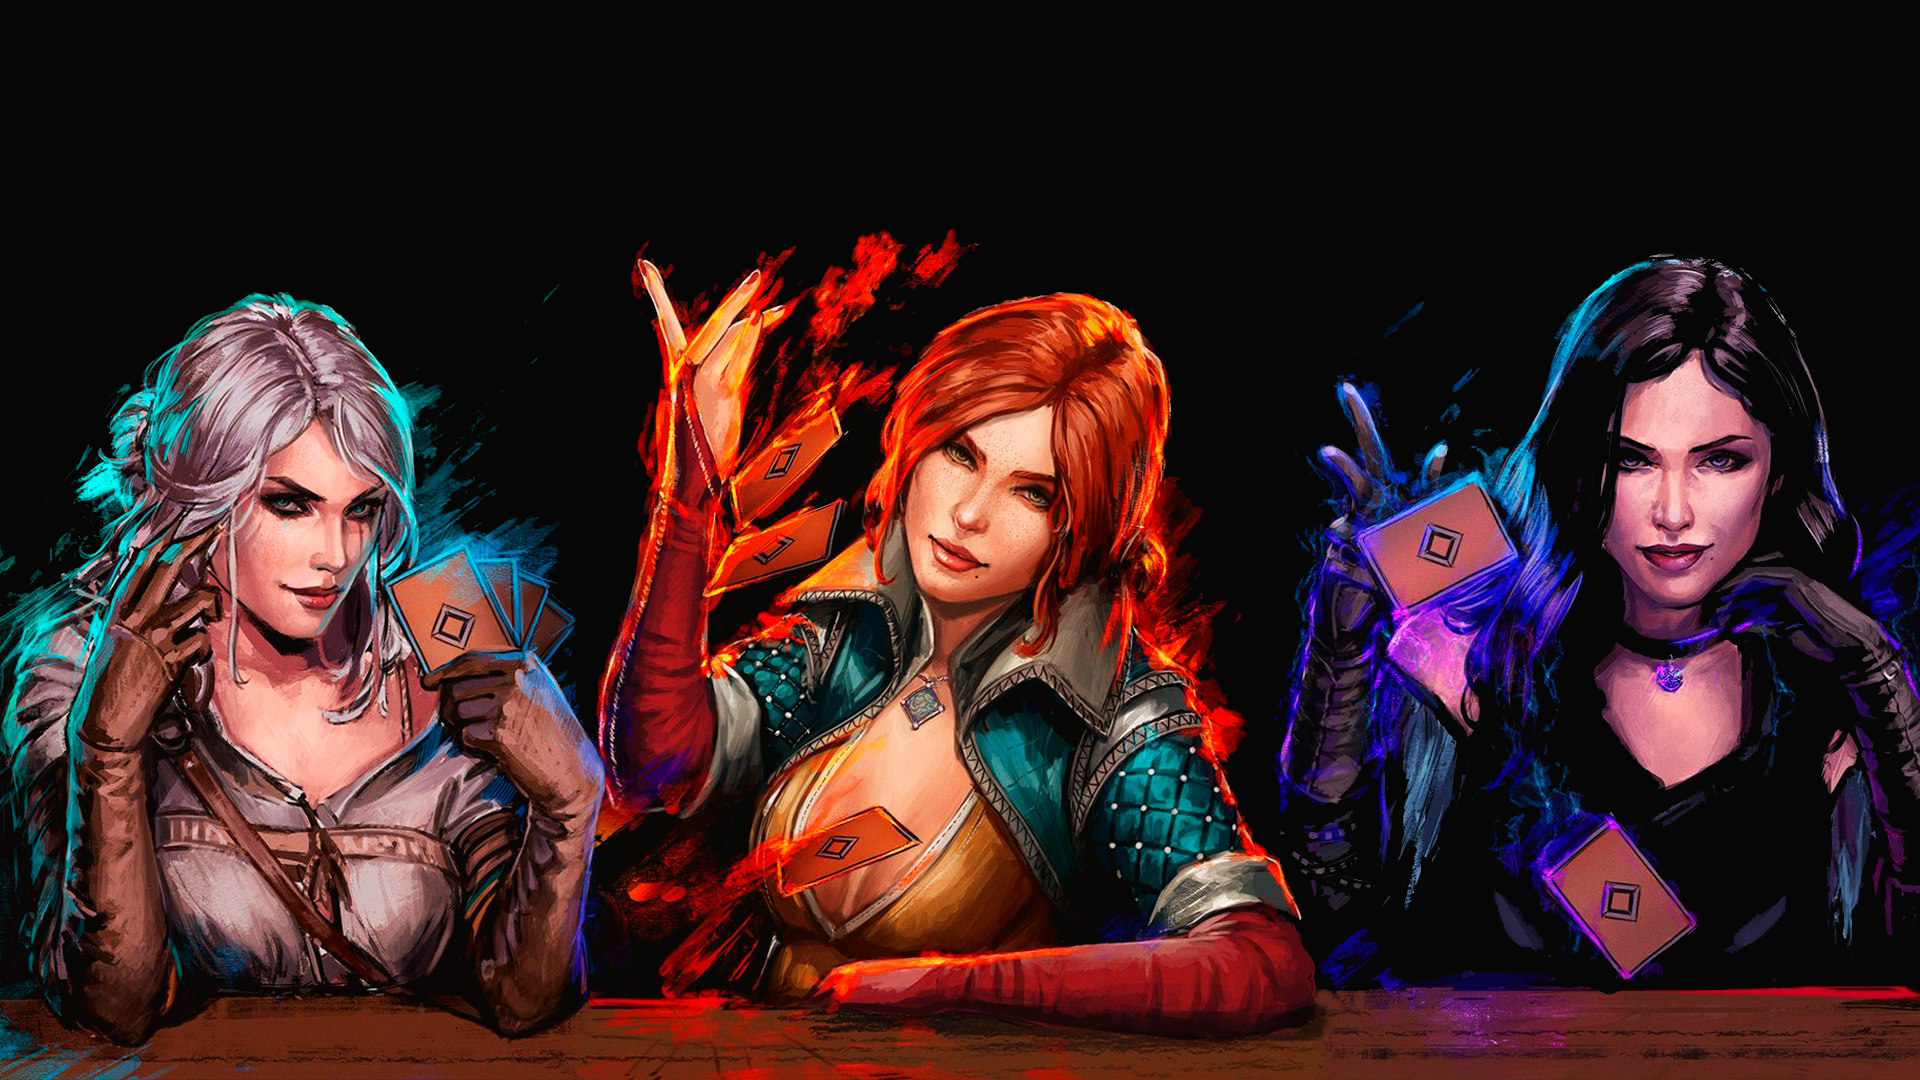 21263 Gwent images backgrounds 2019 1920x1080